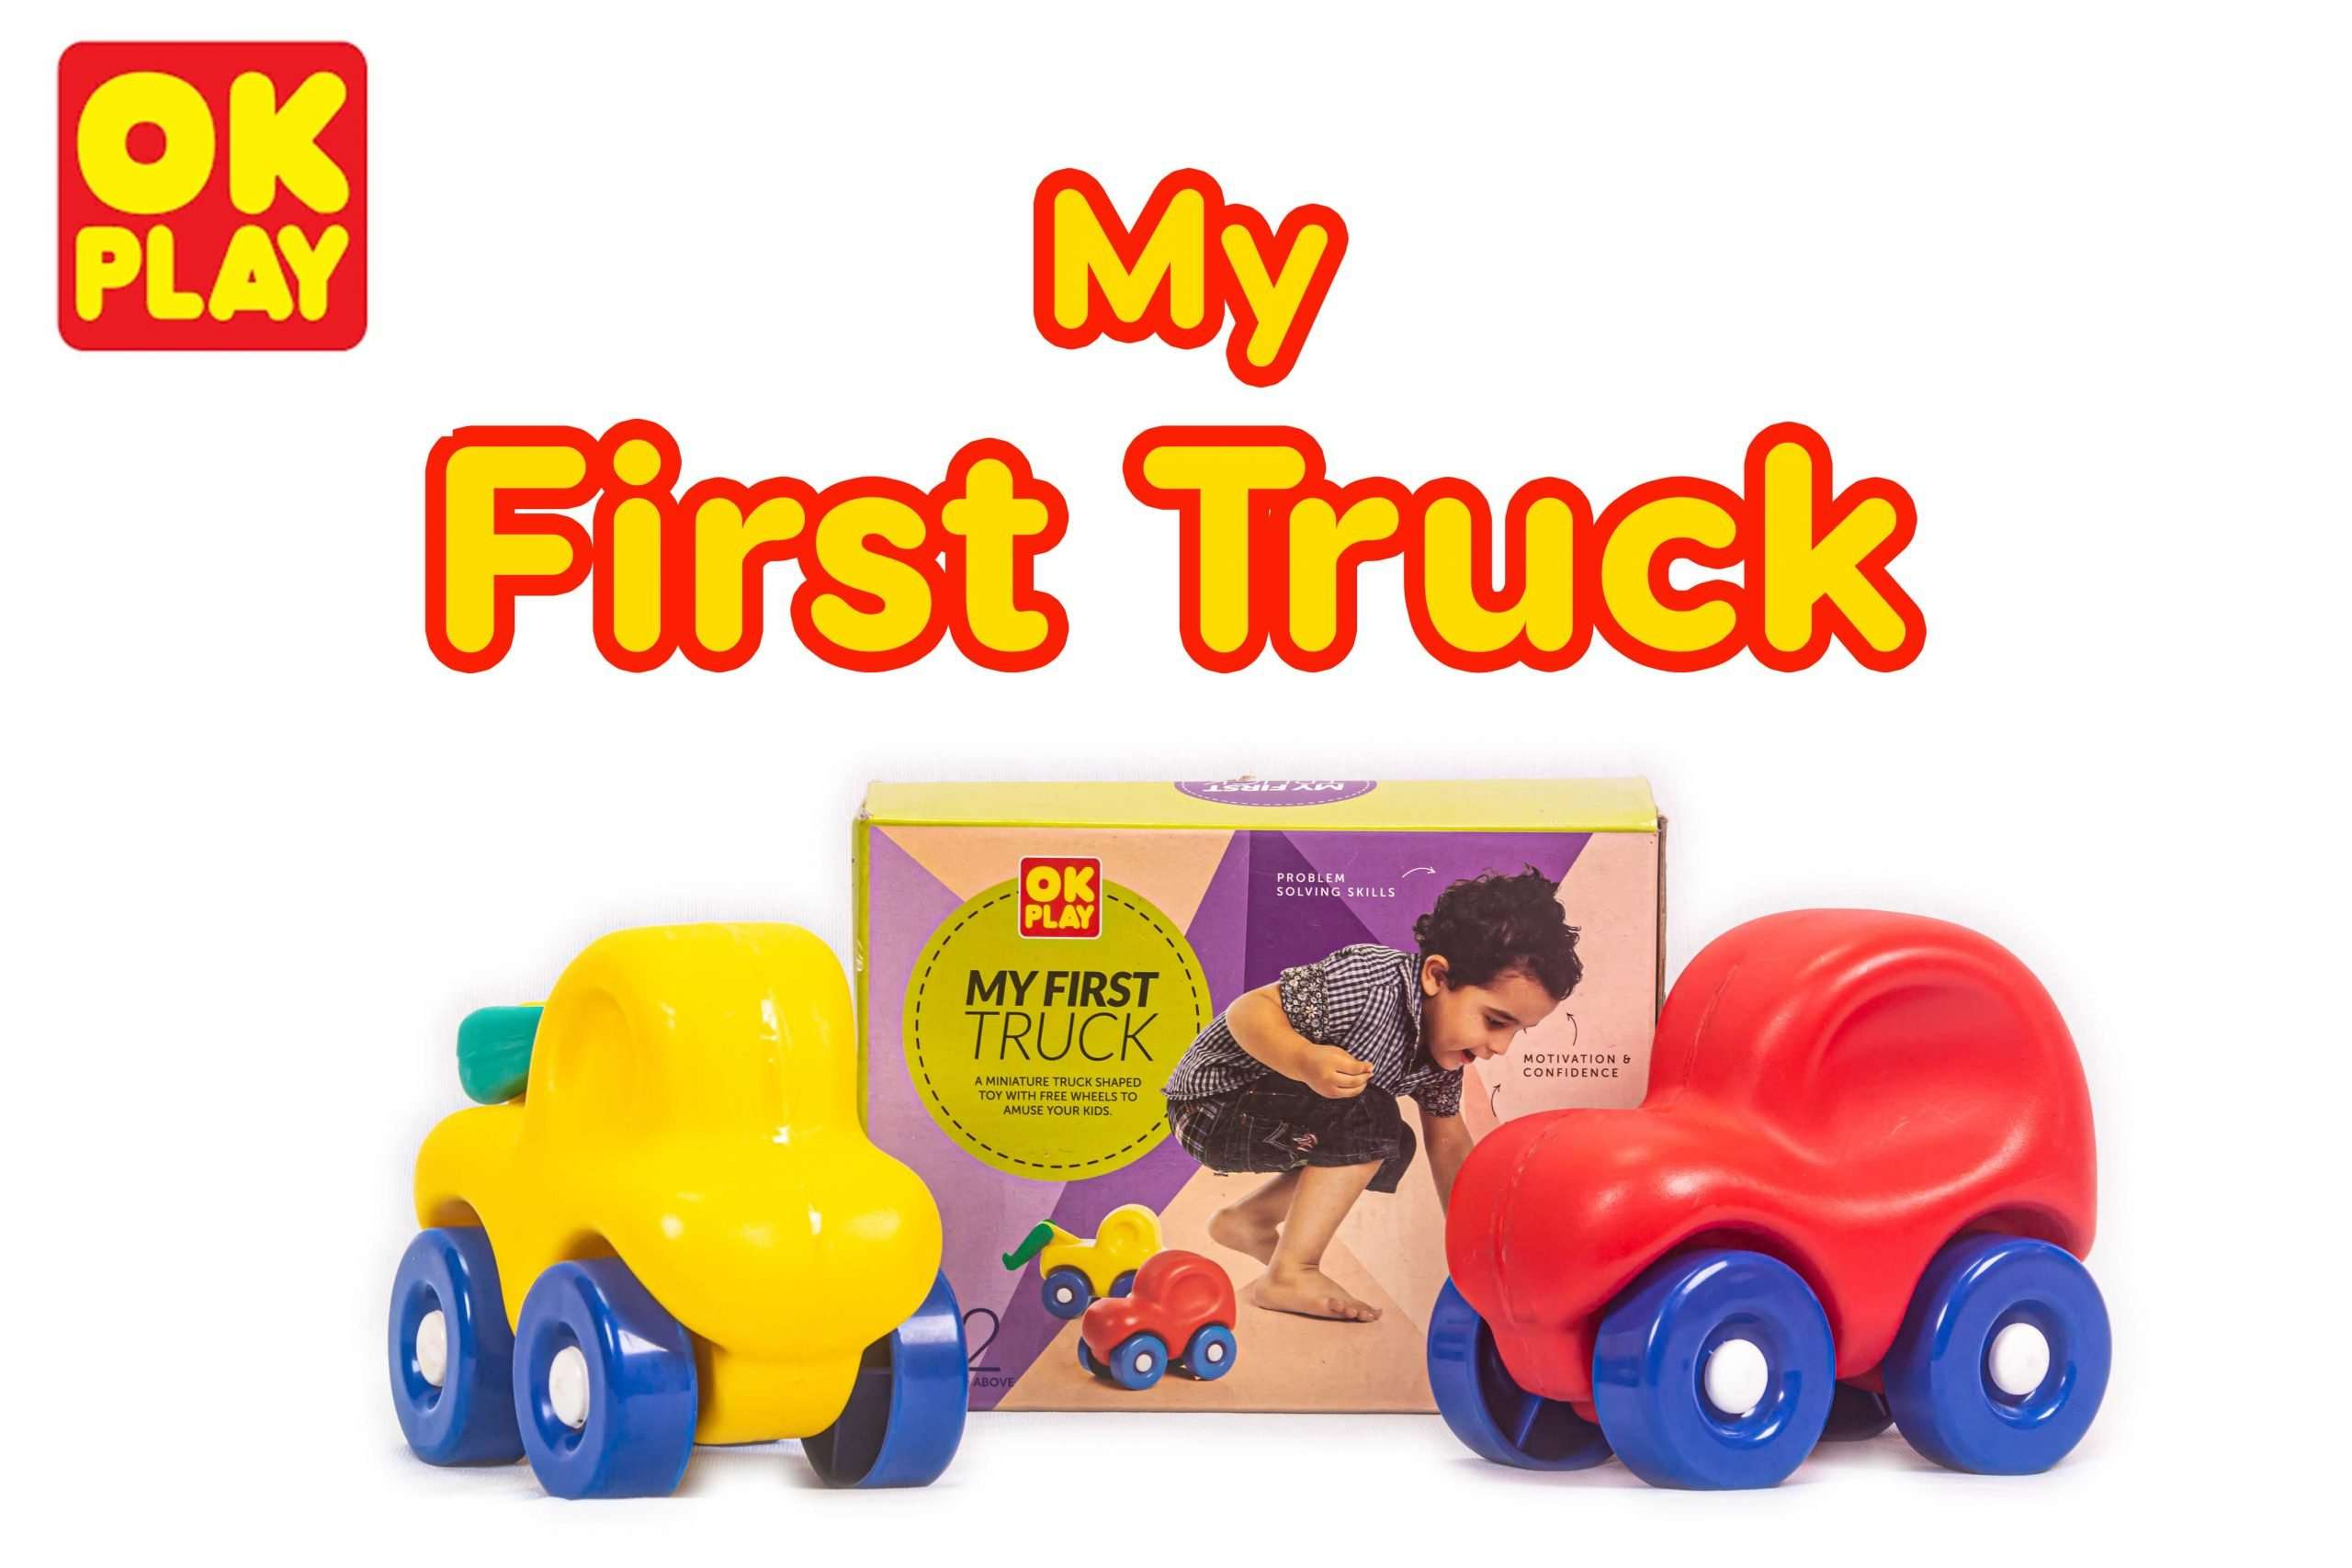 ok play my first truck design 4 scaled